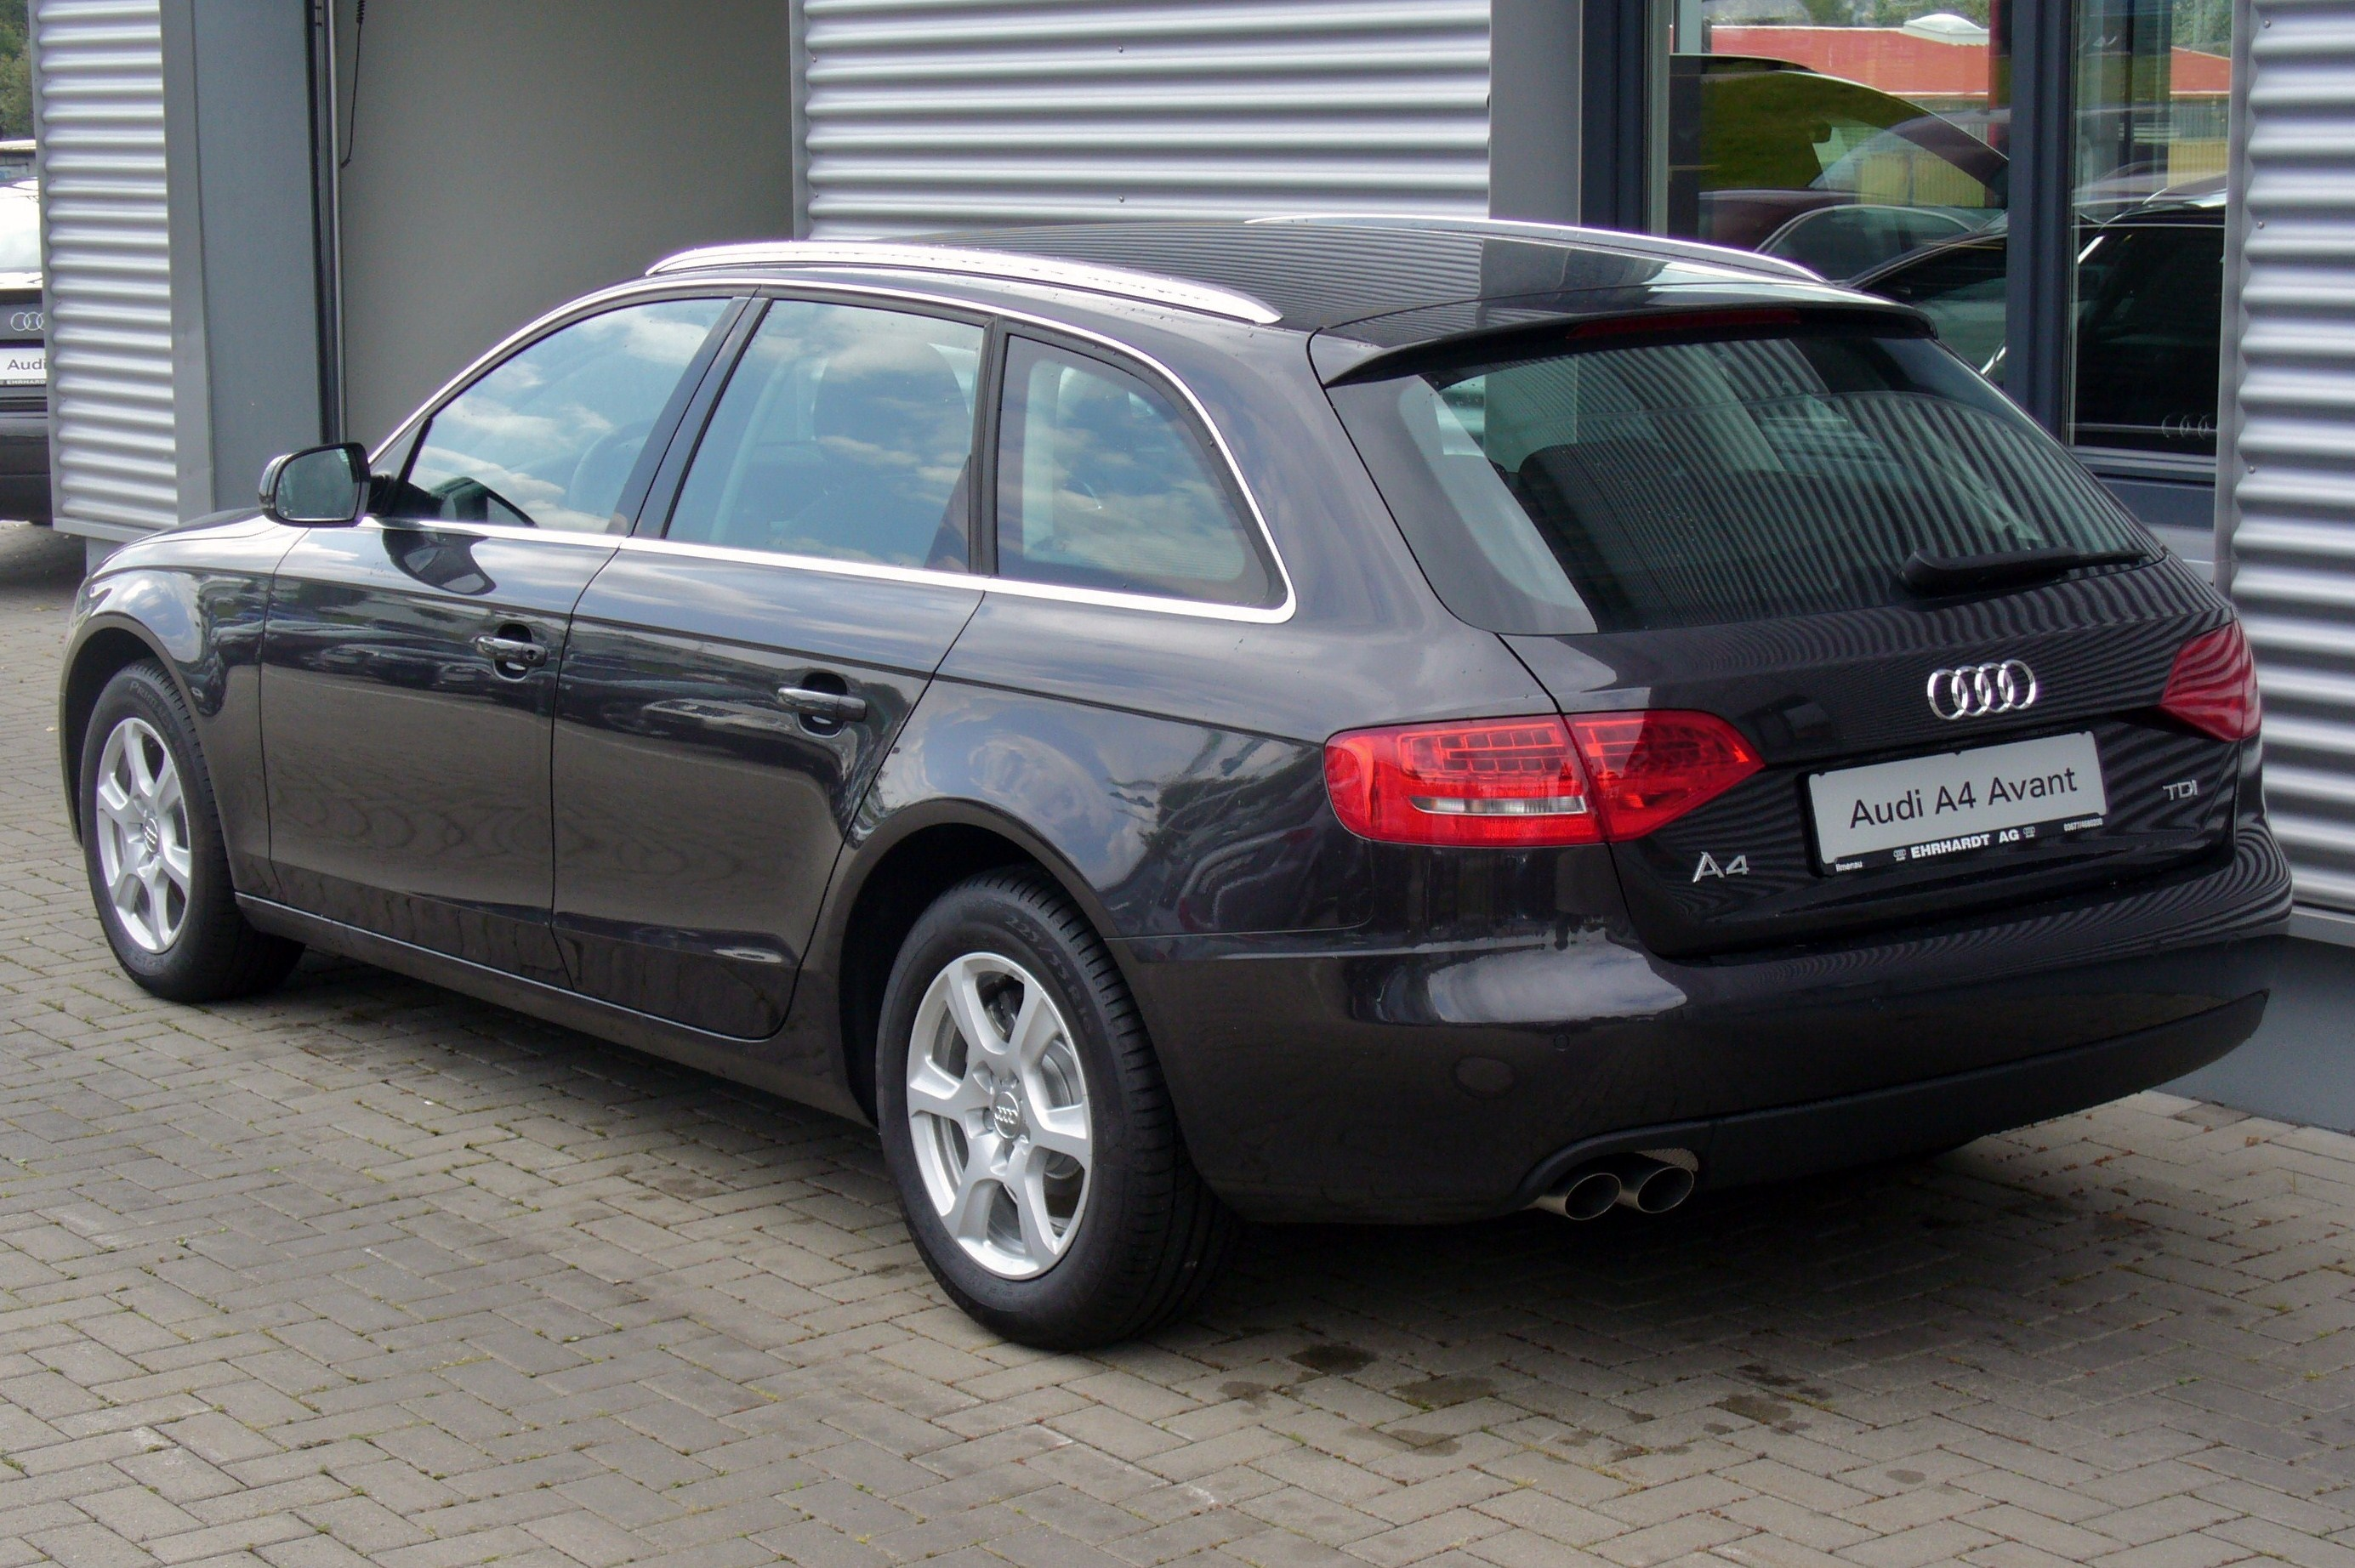 file audi a4 avant attraction 2 0 tdi lavagrau heck jpg wikimedia commons. Black Bedroom Furniture Sets. Home Design Ideas